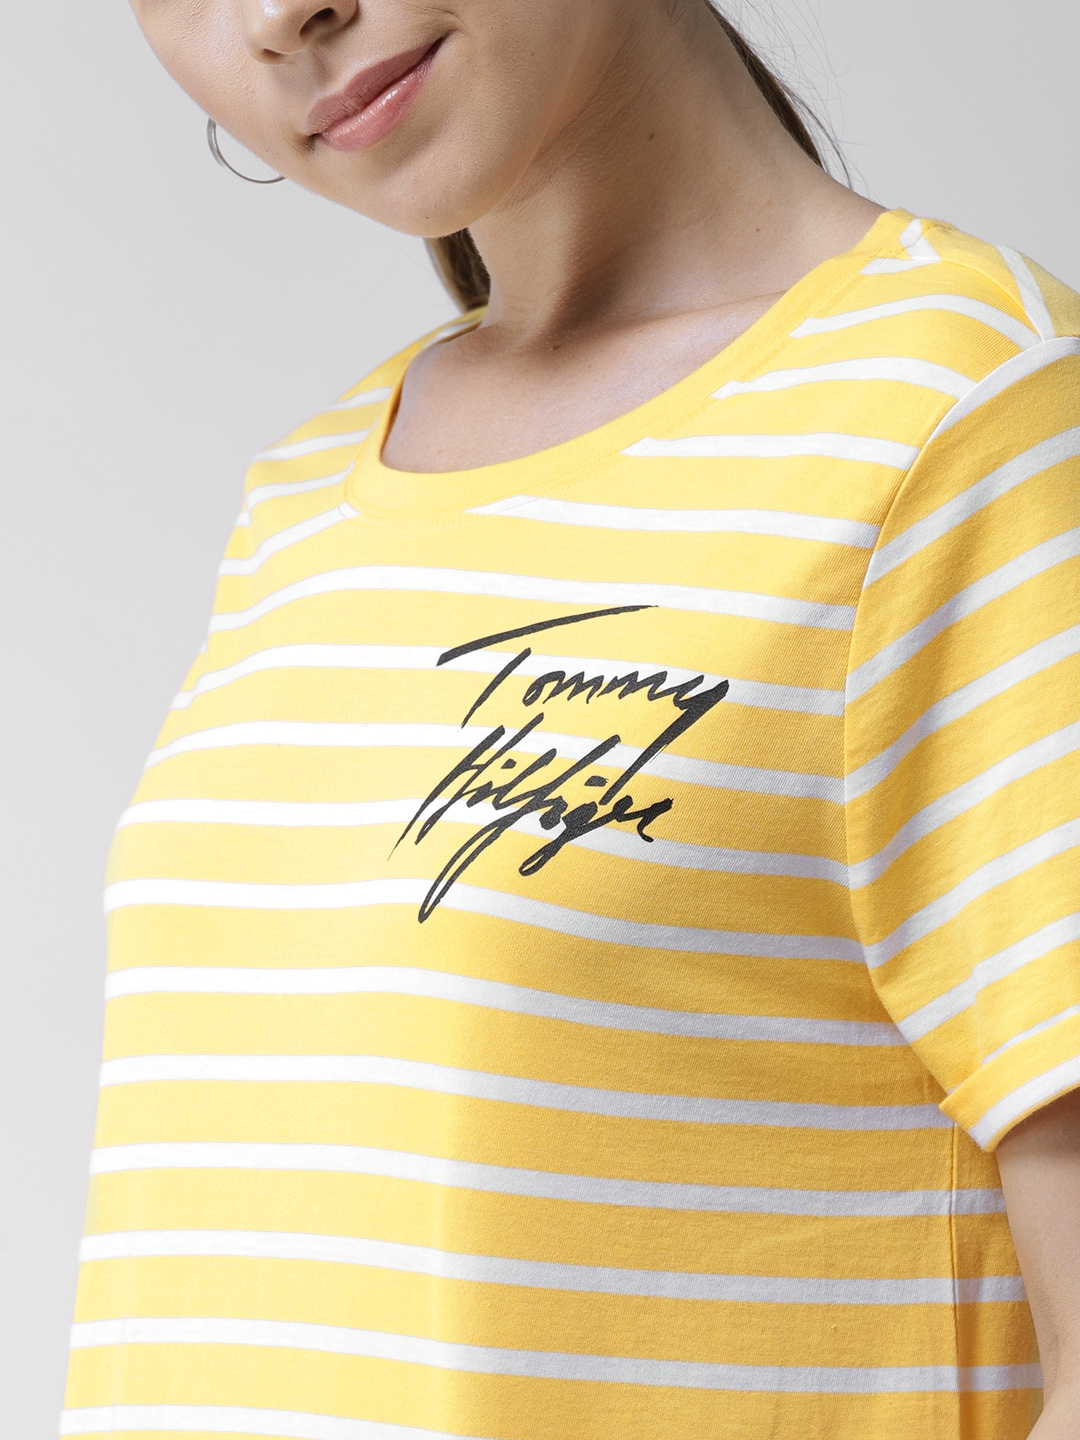 0d7d667a Buy Tommy Hilfiger Women Yellow & White Striped Round Neck T Shirt ...